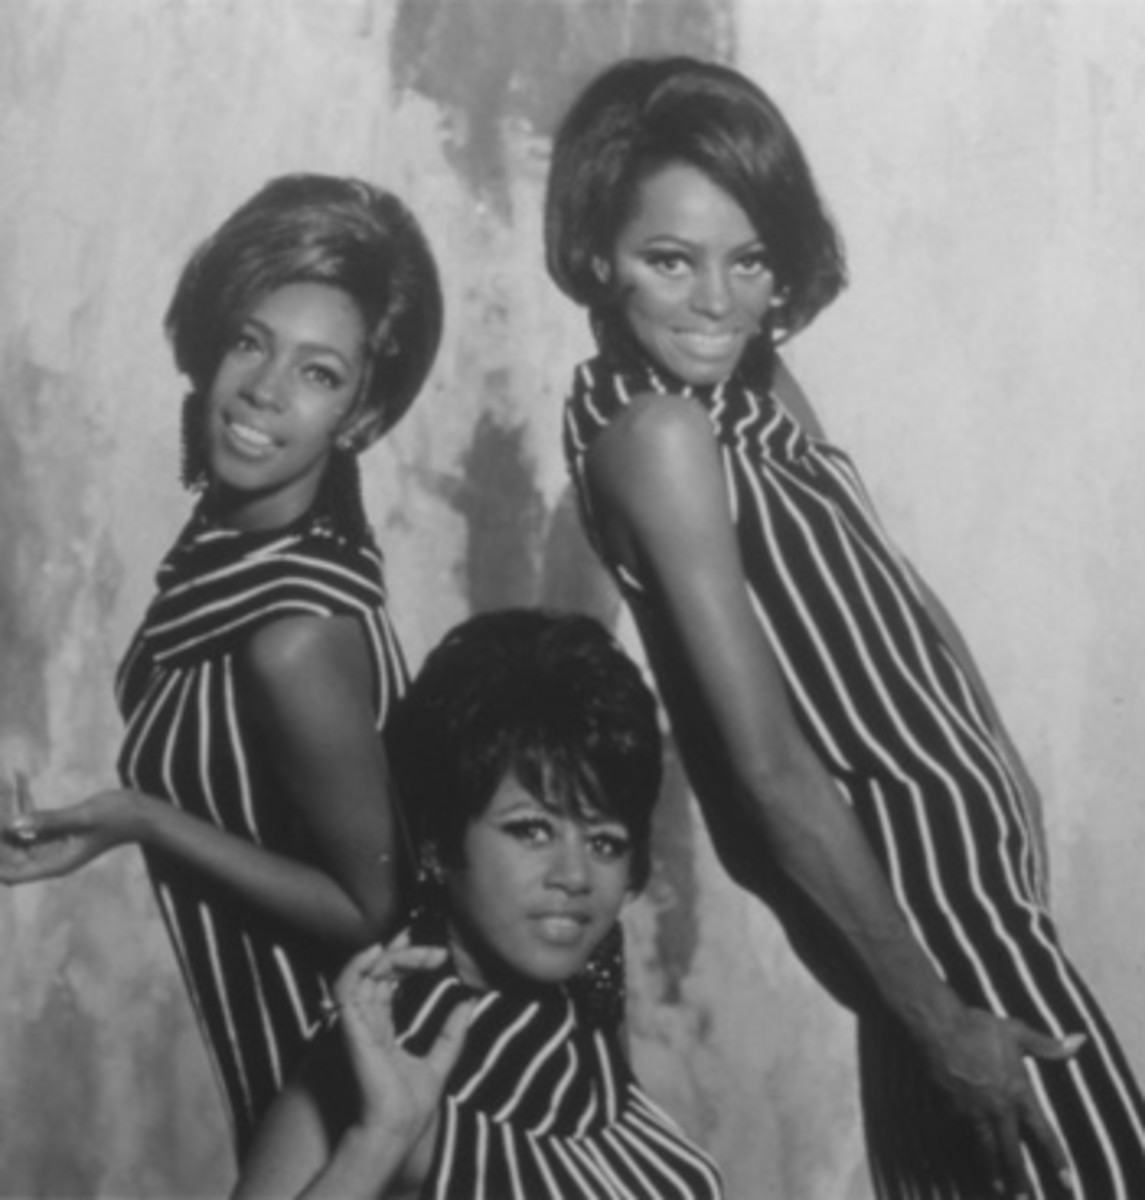 FOREVER ELEGANT, The Supremes were known being fashion-forward artists. The Story of The Supremes from The Mary Wilson Gown Collection is an exhibit that shares the group's history via its evolution in fashion and music. Publicity photo.